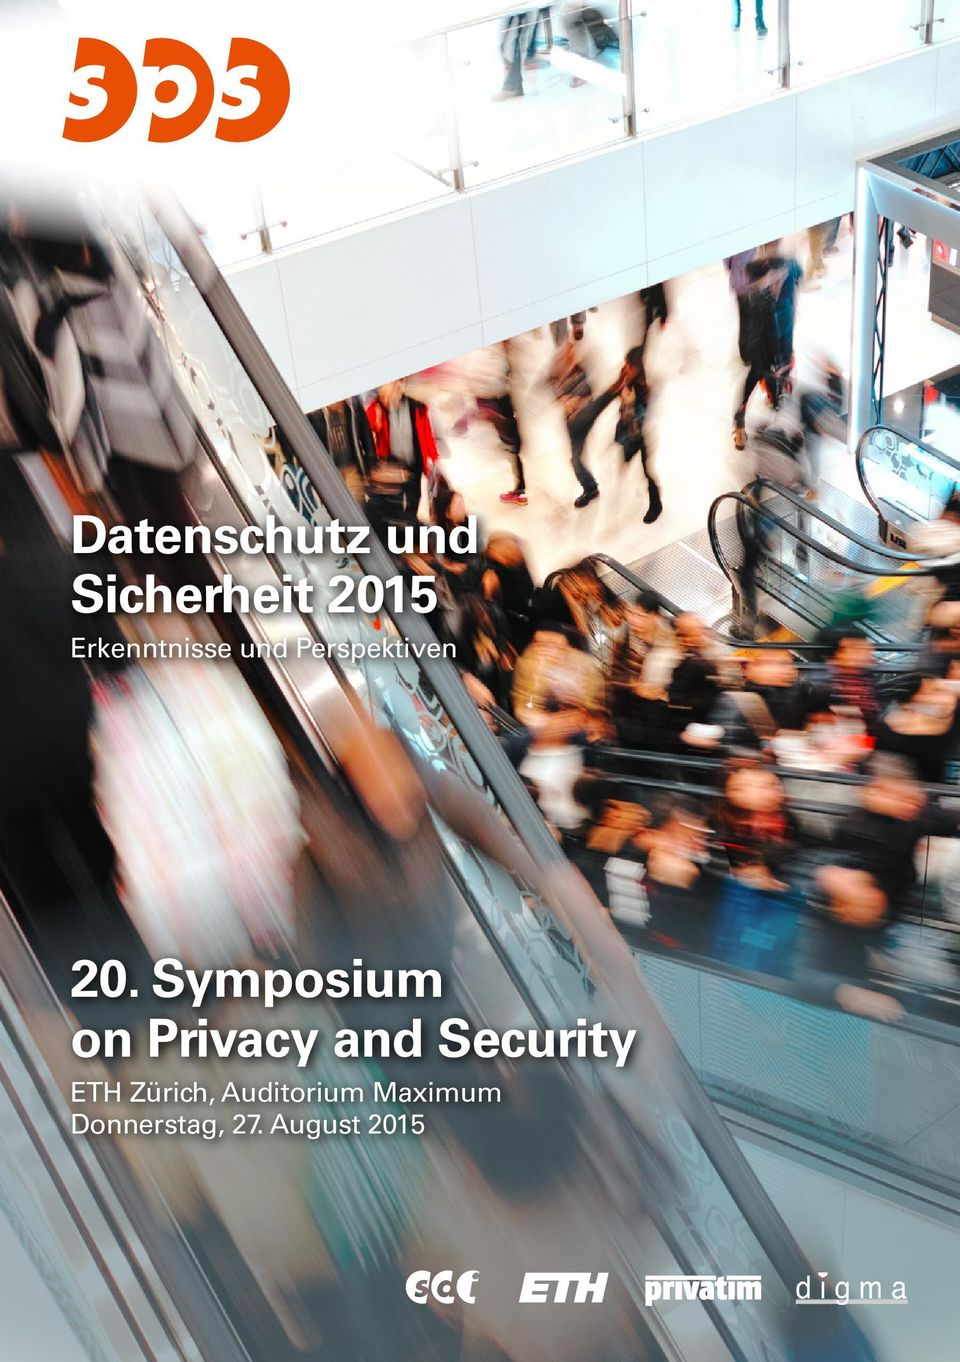 Symposium on Privacy and Security ETH